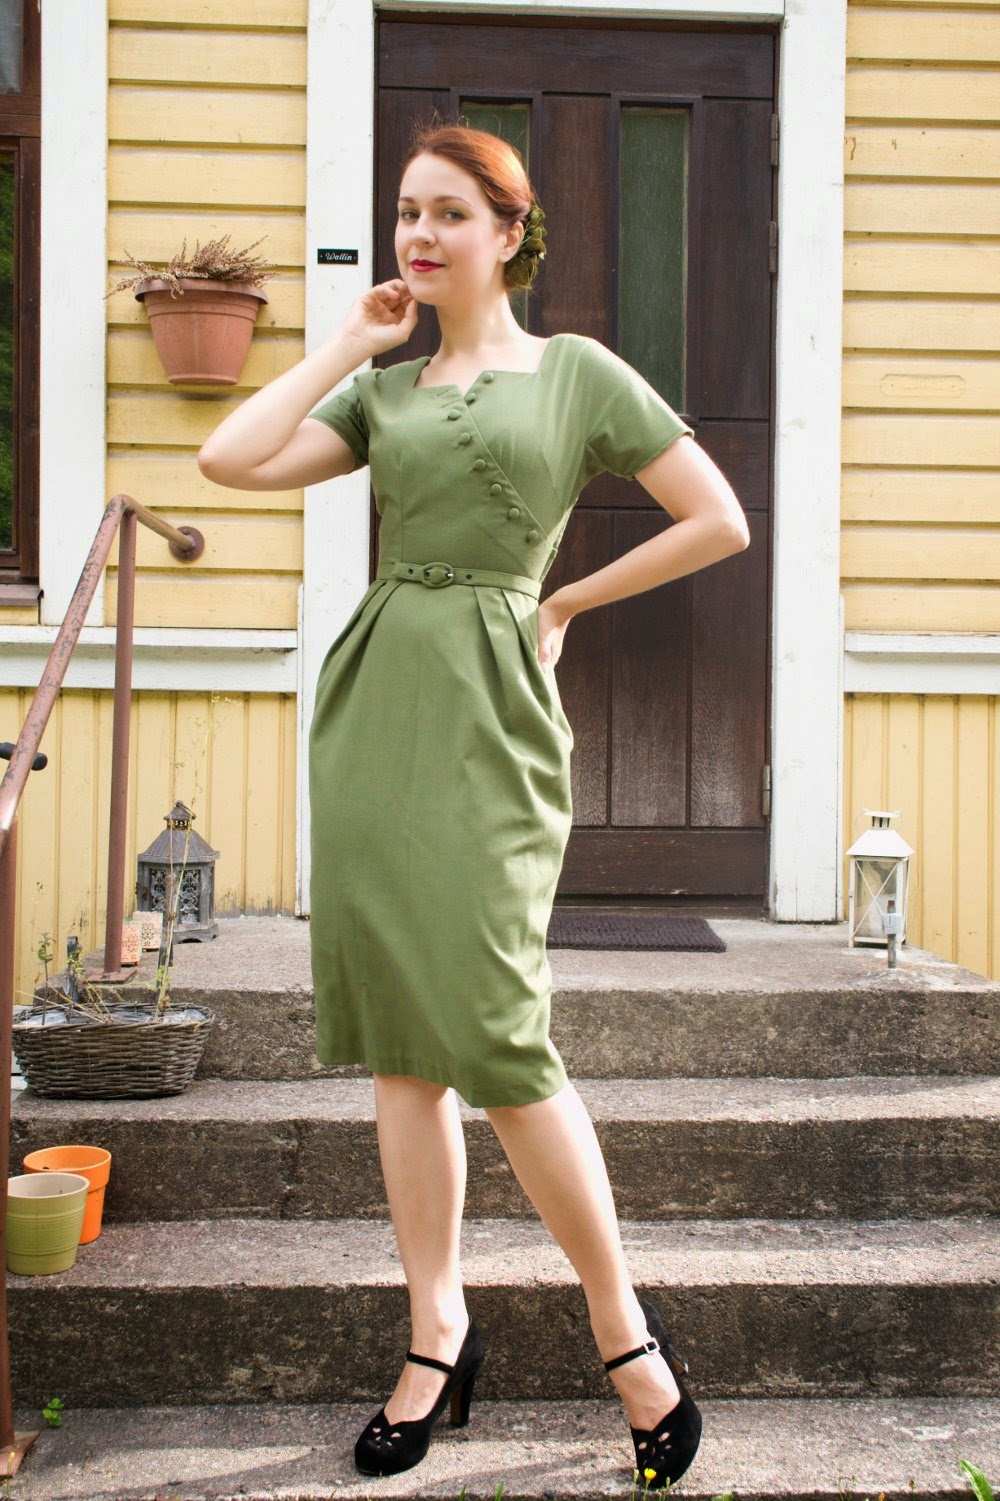 50s reproduction dress in green by Cherise